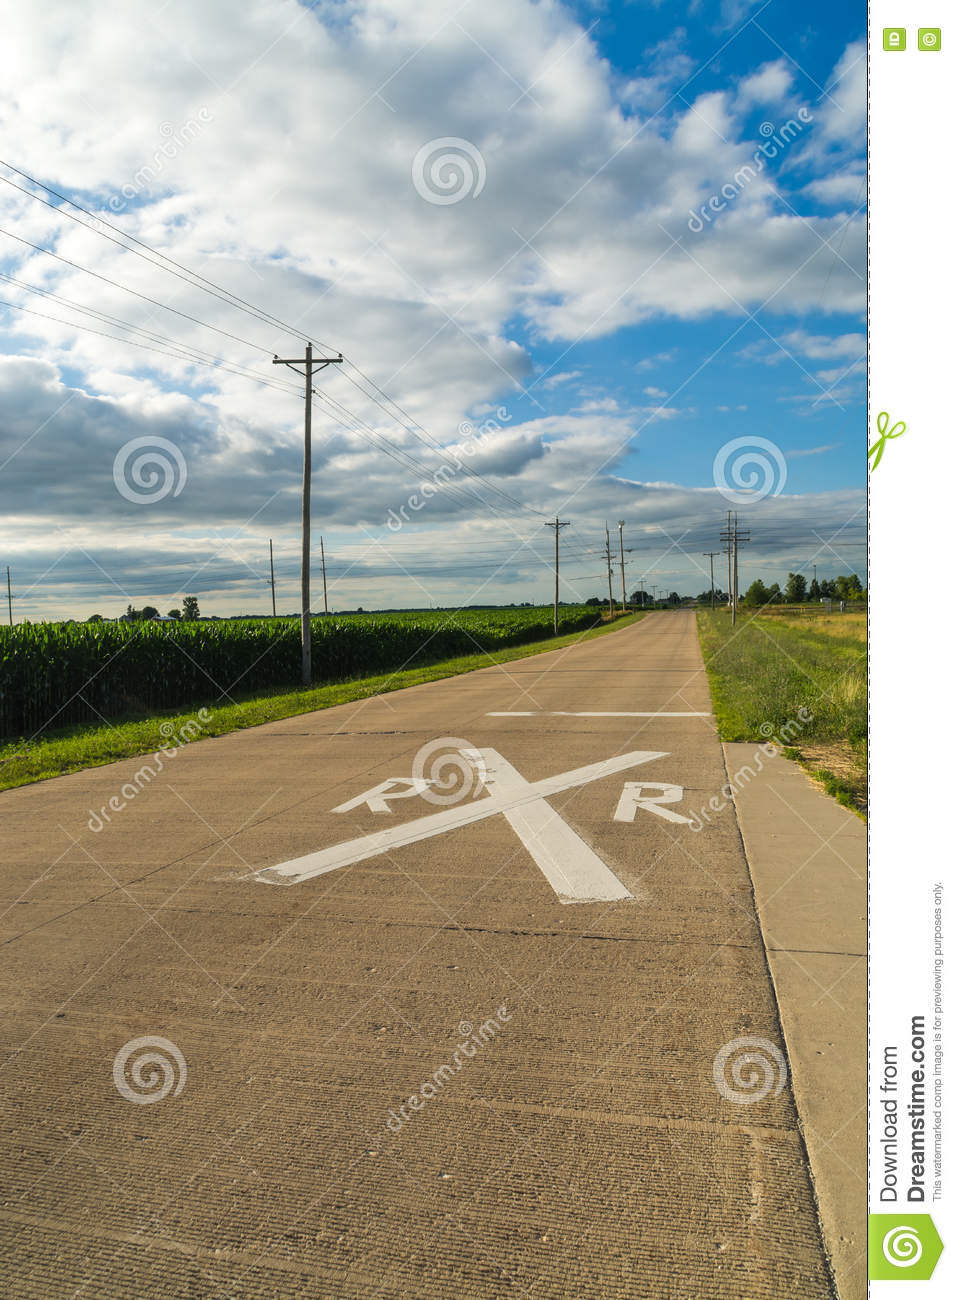 Railroad Crossing In The Country  Stock Photo - Image of